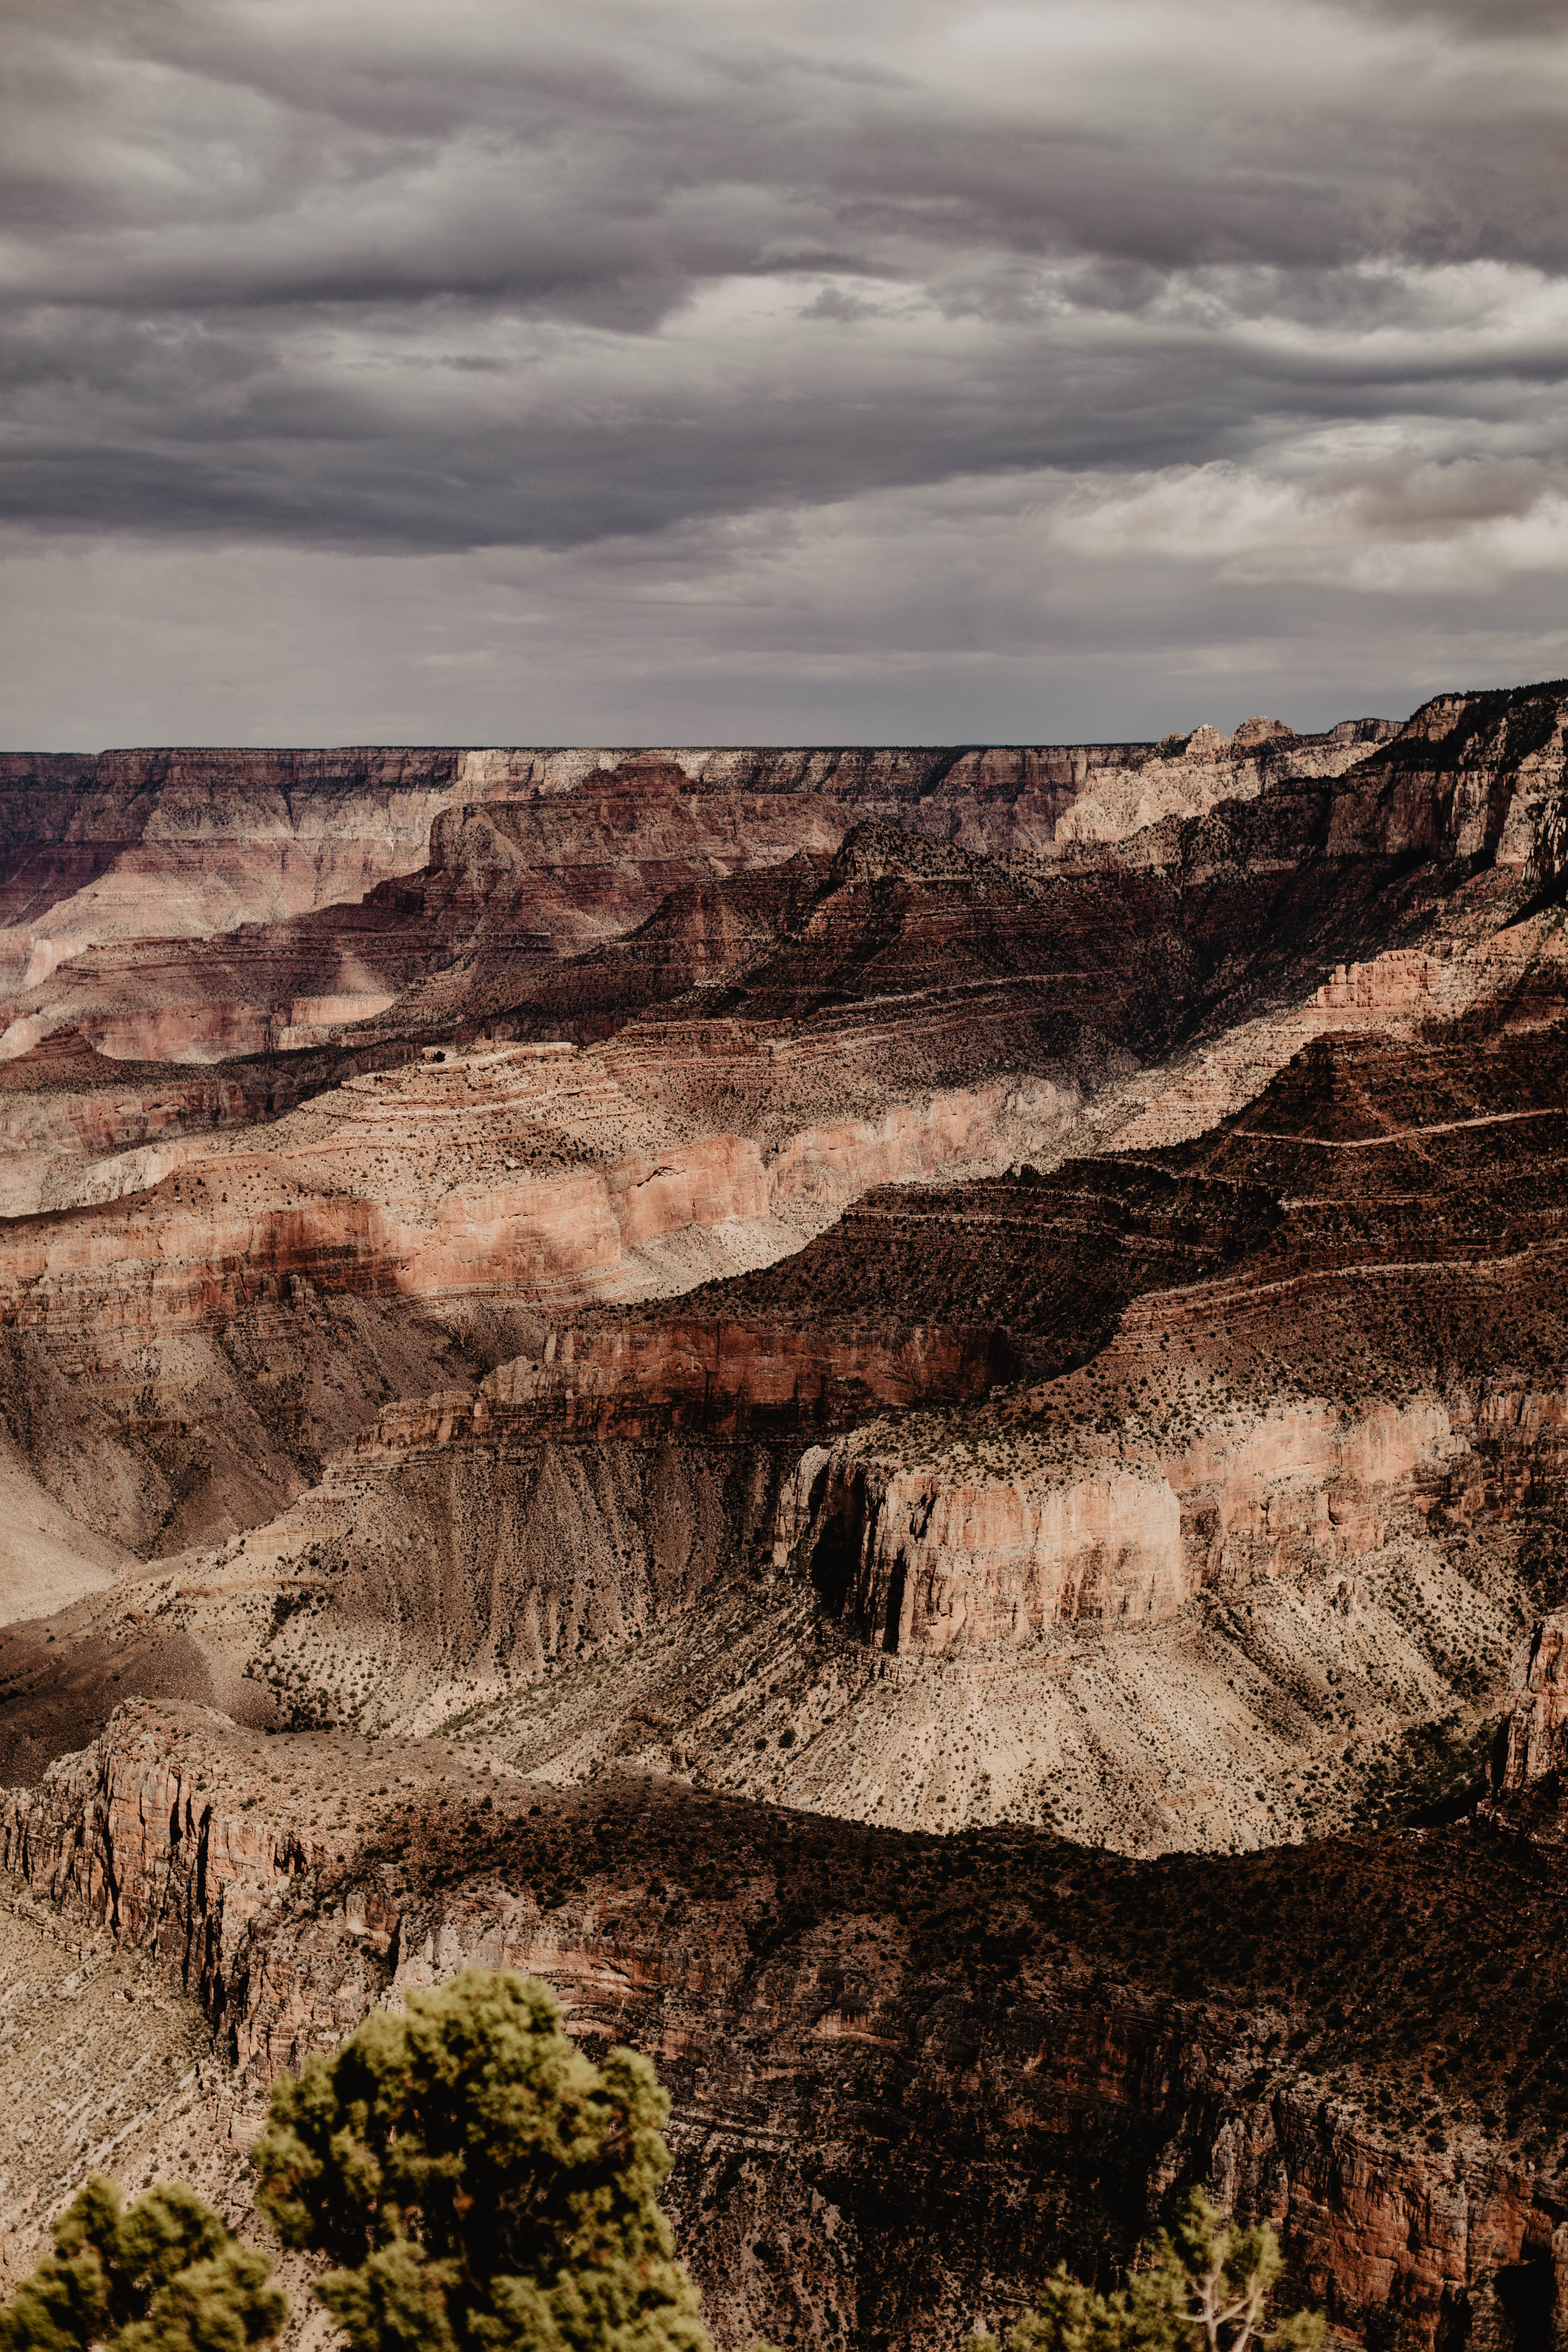 7. The Grand Canyon